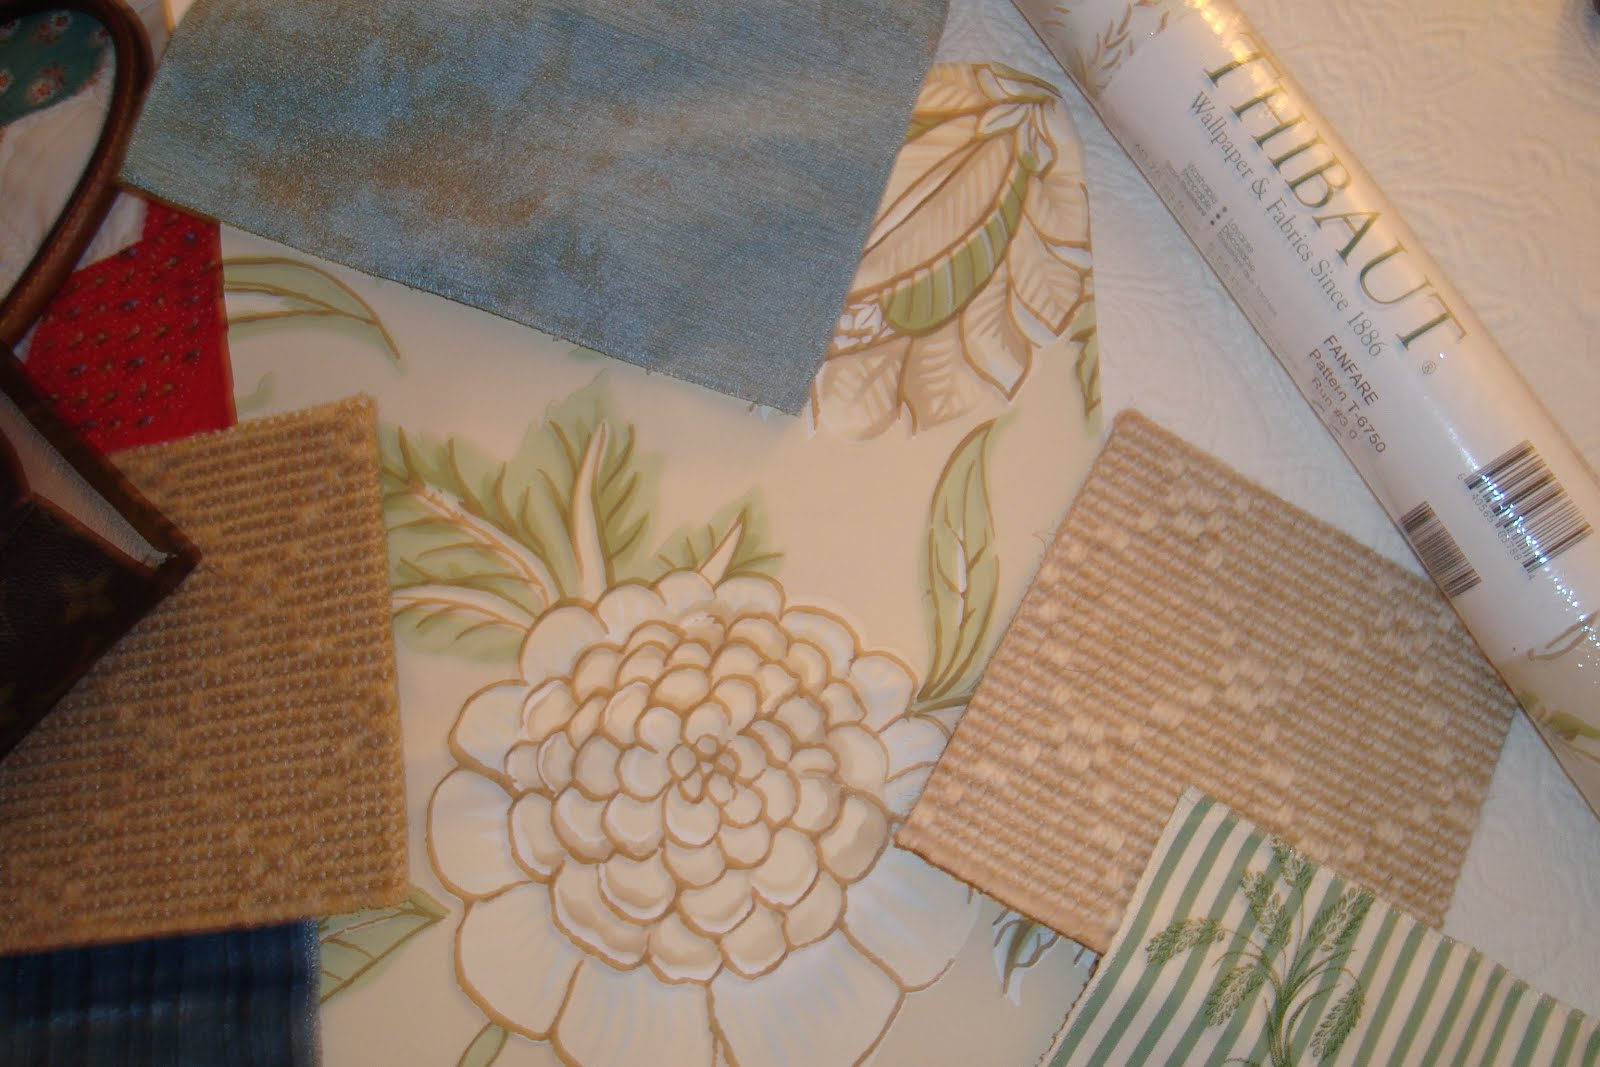 Mary and I found this CHARMING wallpaper from THIBAUT for her master 1600x1067